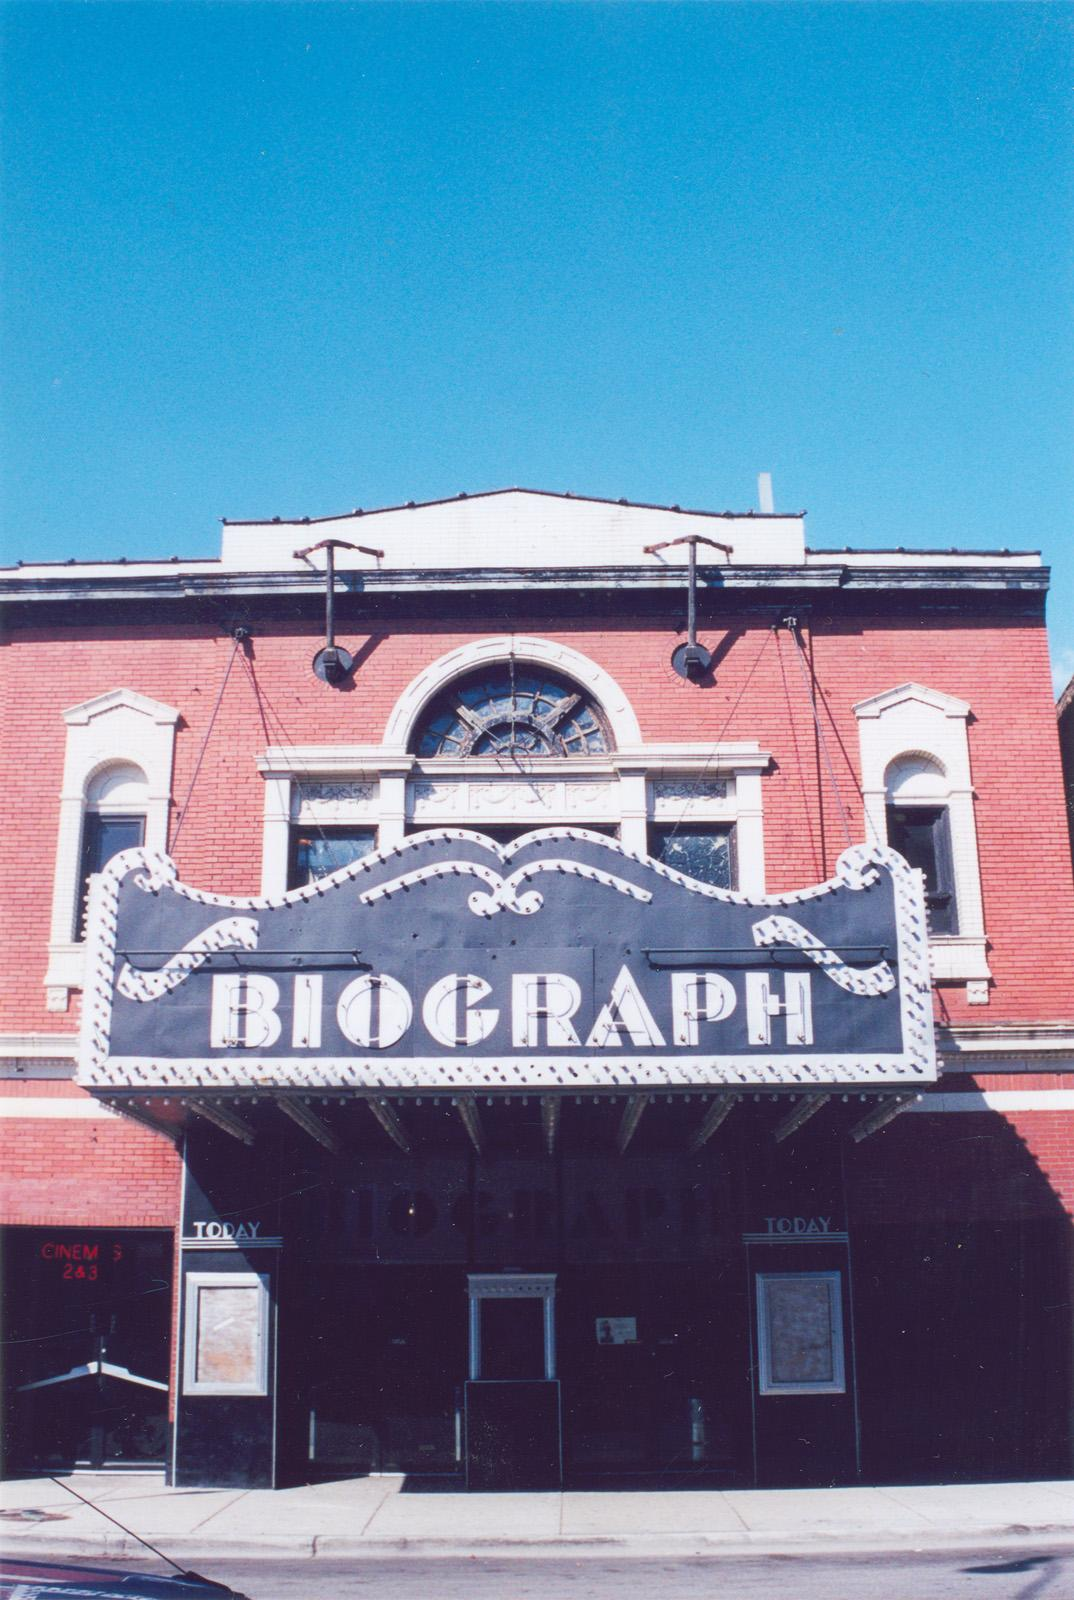 2433 N. Lincoln Ave.; Biograph Theater; Motion picture theaters